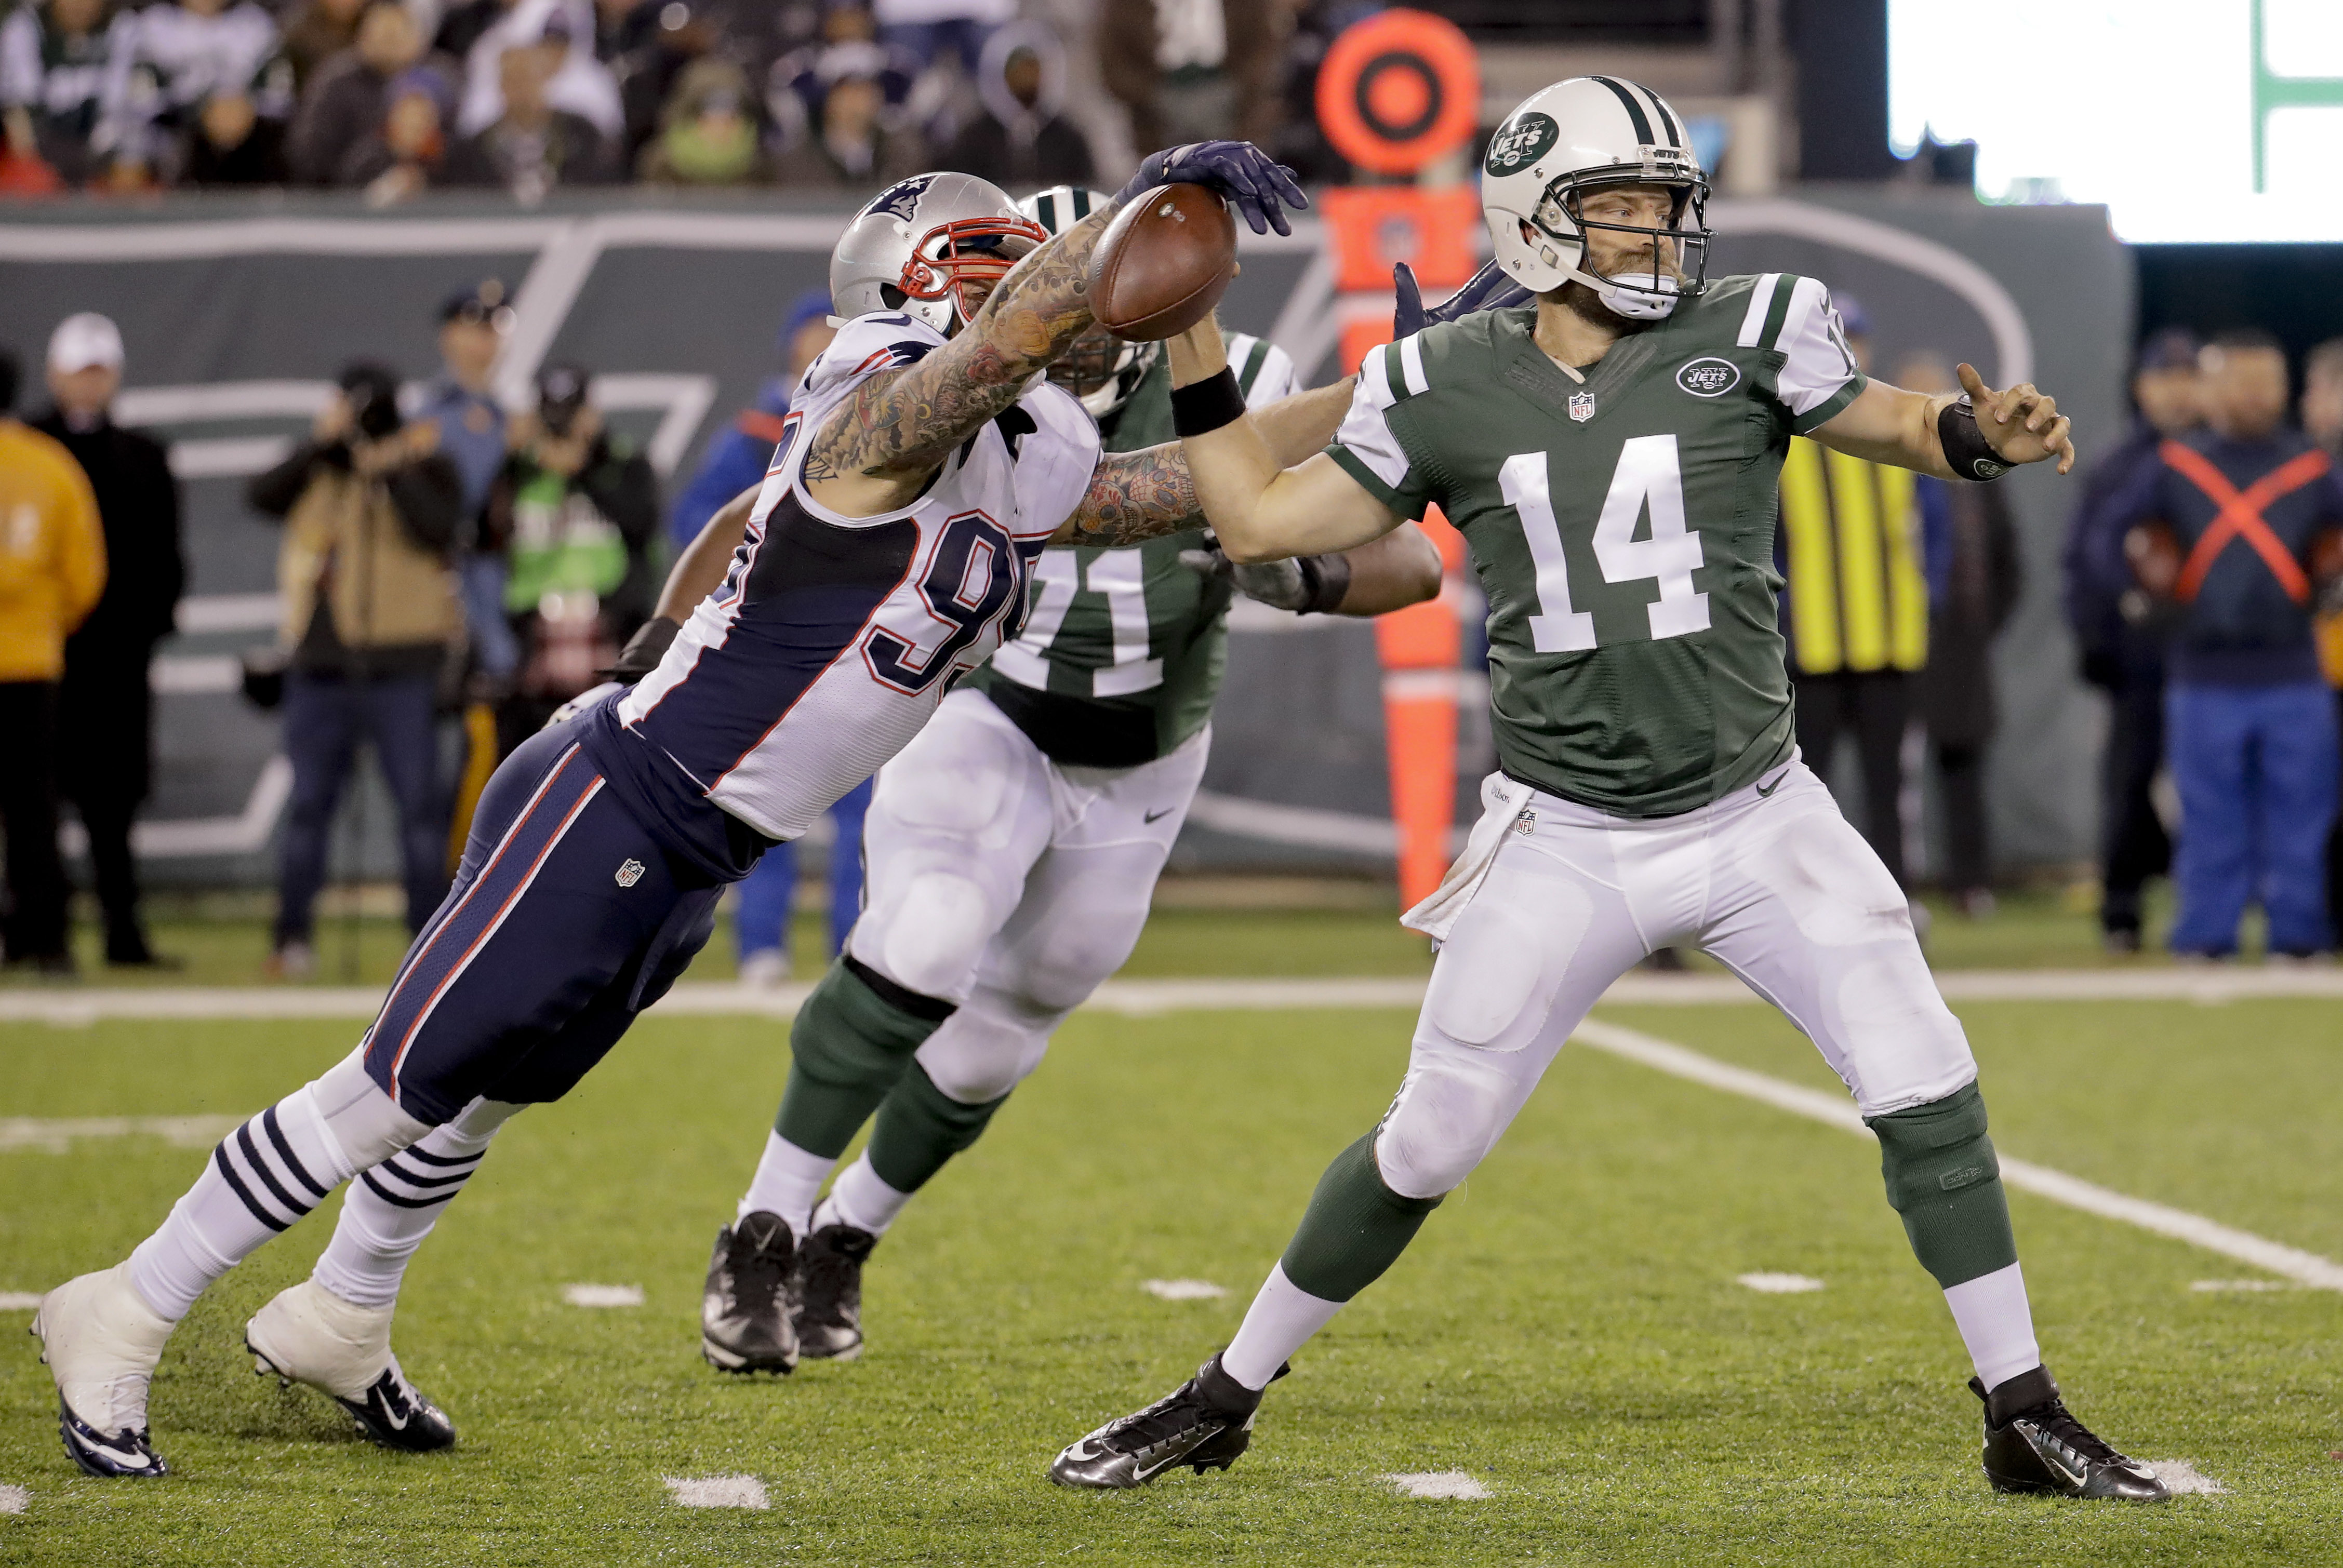 New England Patriots defensive end Chris Long (95) gets a hand on the ball as New York Jets quarterback Ryan Fitzpatrick (14) throws during the fourth quarter of an NFL football game, Sunday, Nov. 27, 2016, in East Rutherford, N.J. The Patriots recovered